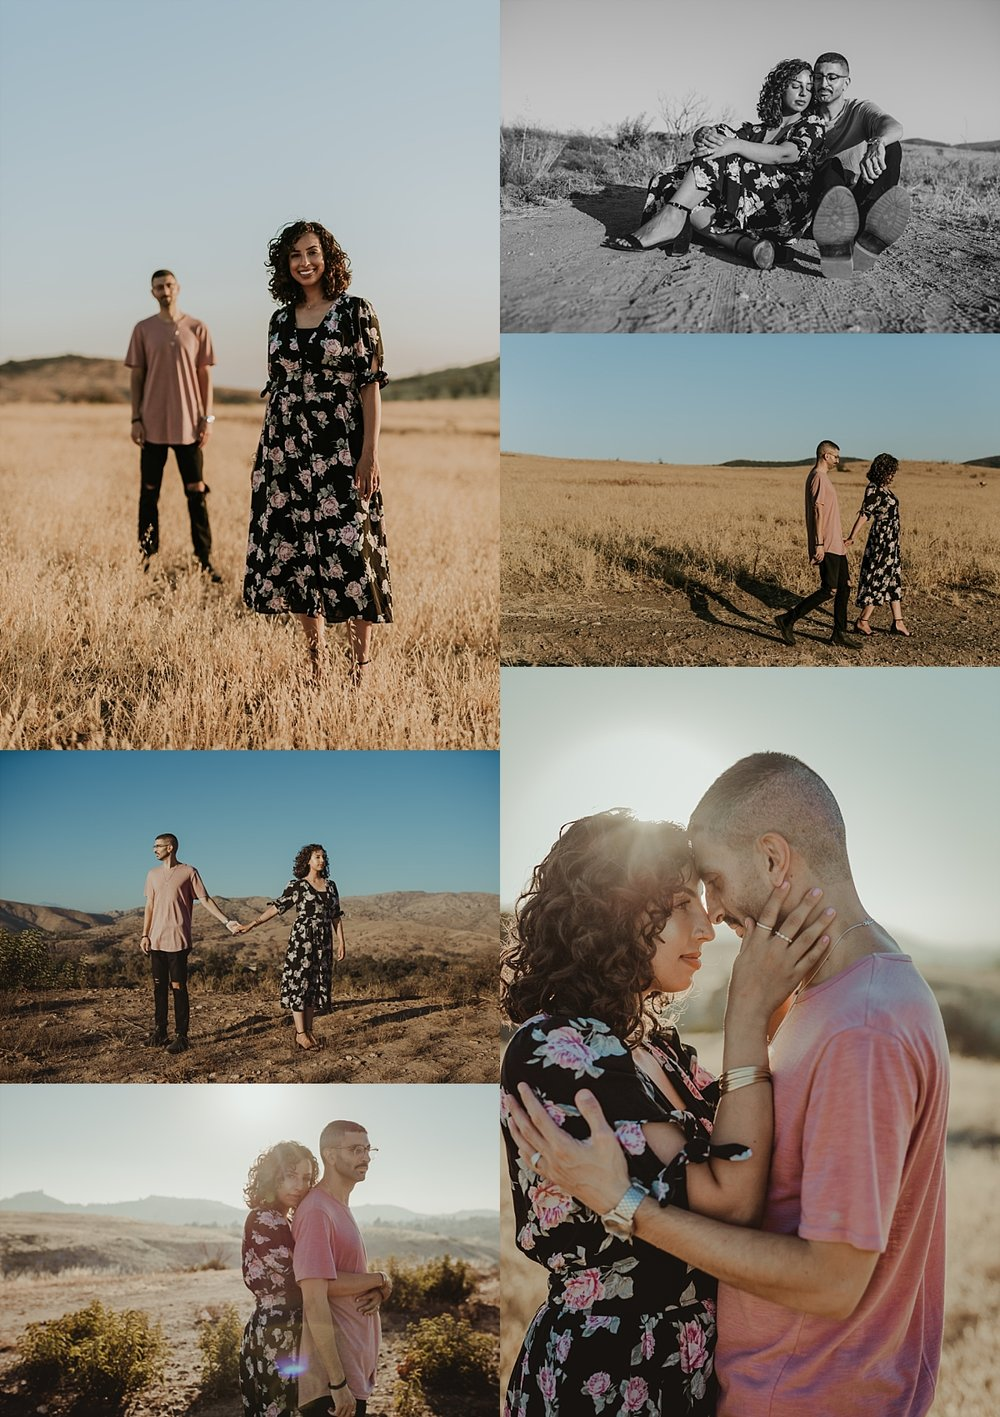 Couples photo session at Irvine Regional Park by Krystil McDowall Photography